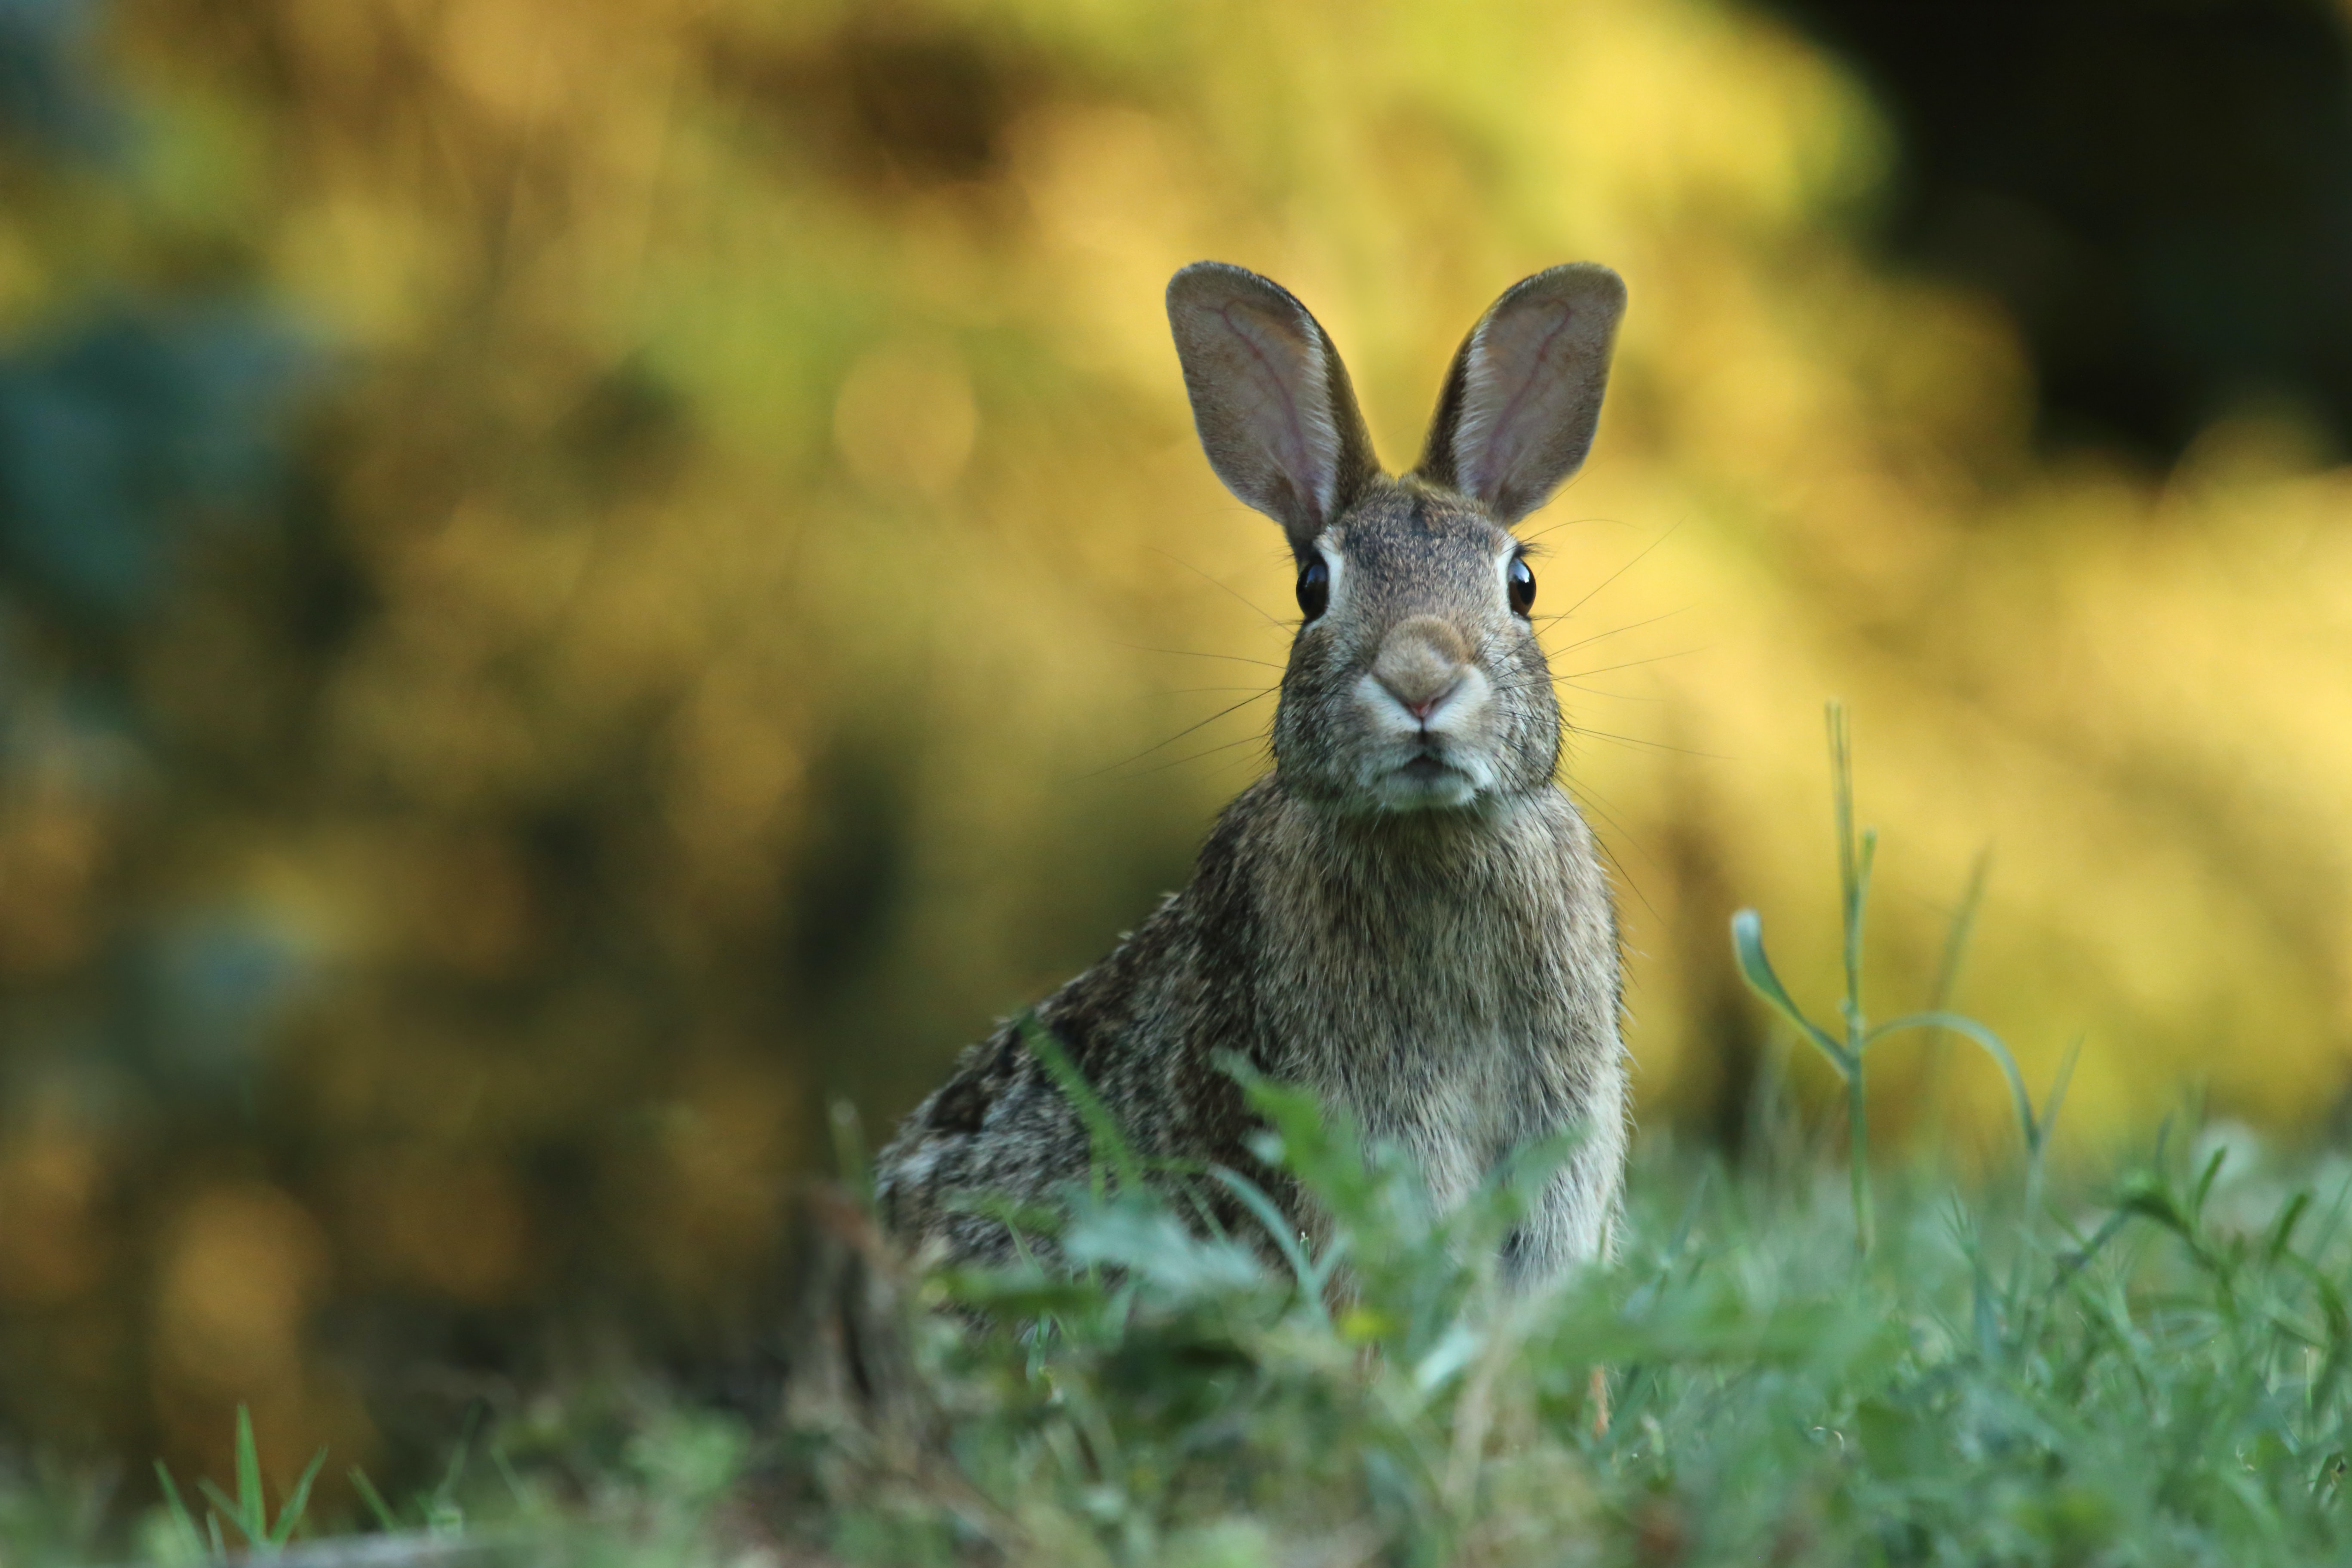 Portrait of a wild rabbit alert of predators in a field